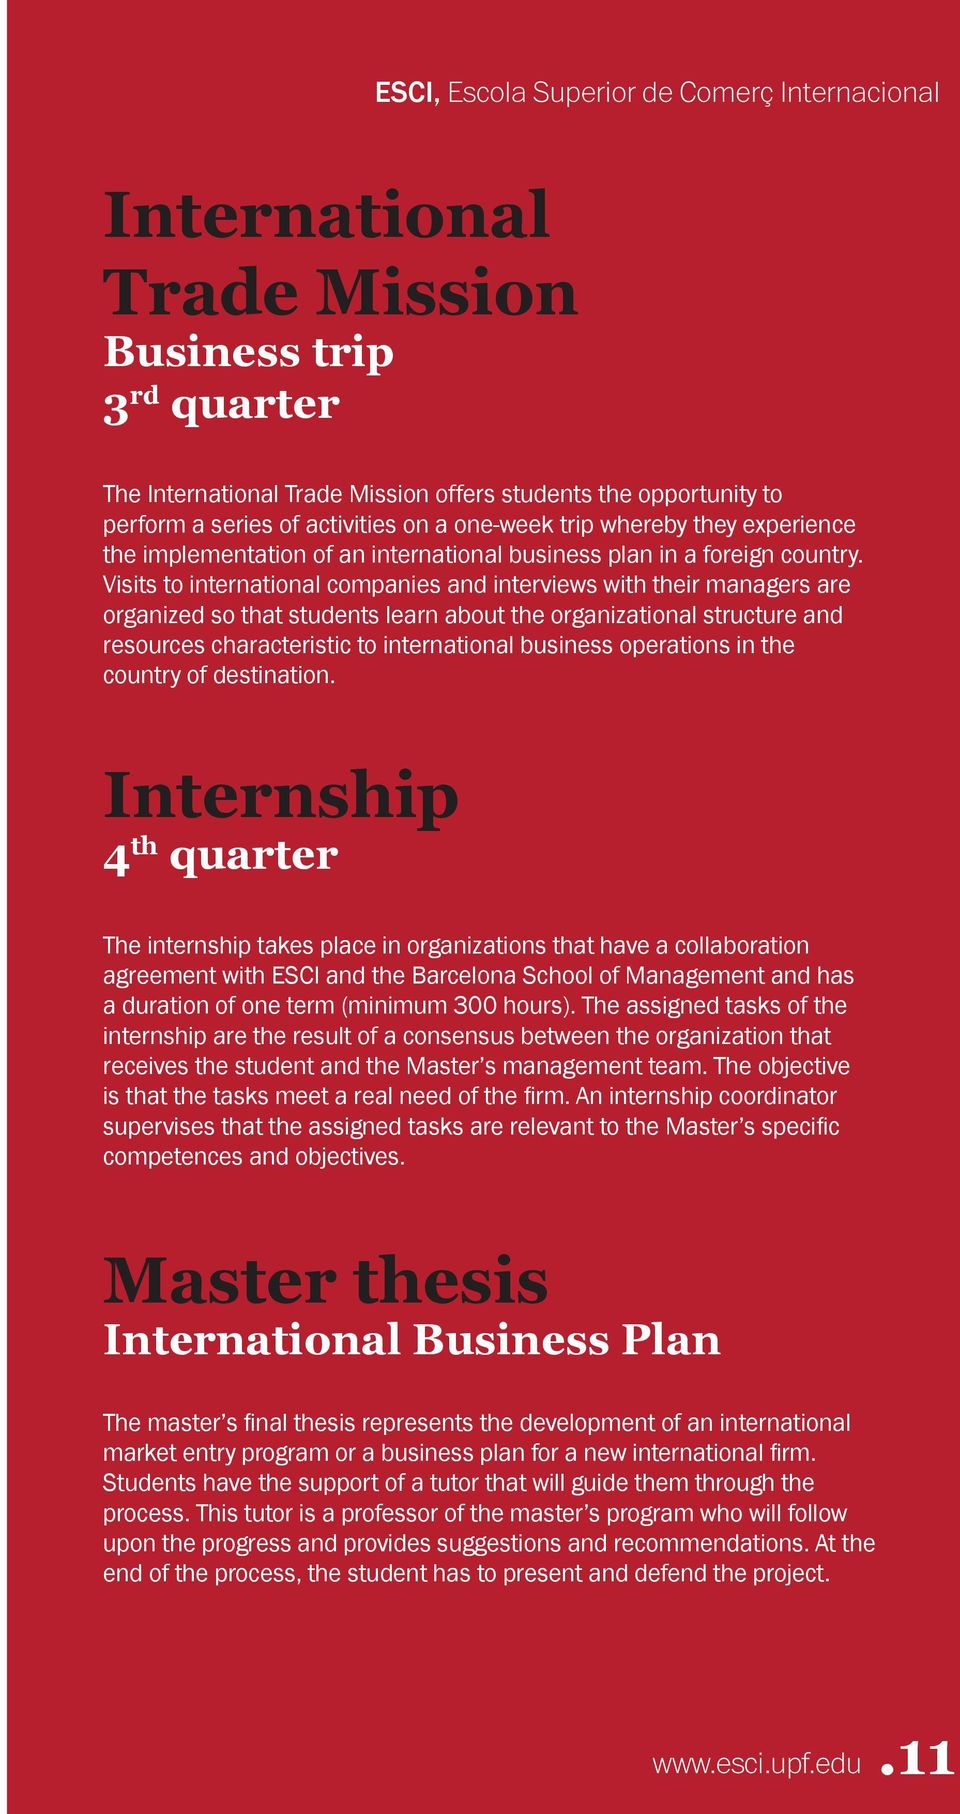 Visits to international companies and interviews with their managers are organized so that students learn about the organizational structure and resources characteristic to international business